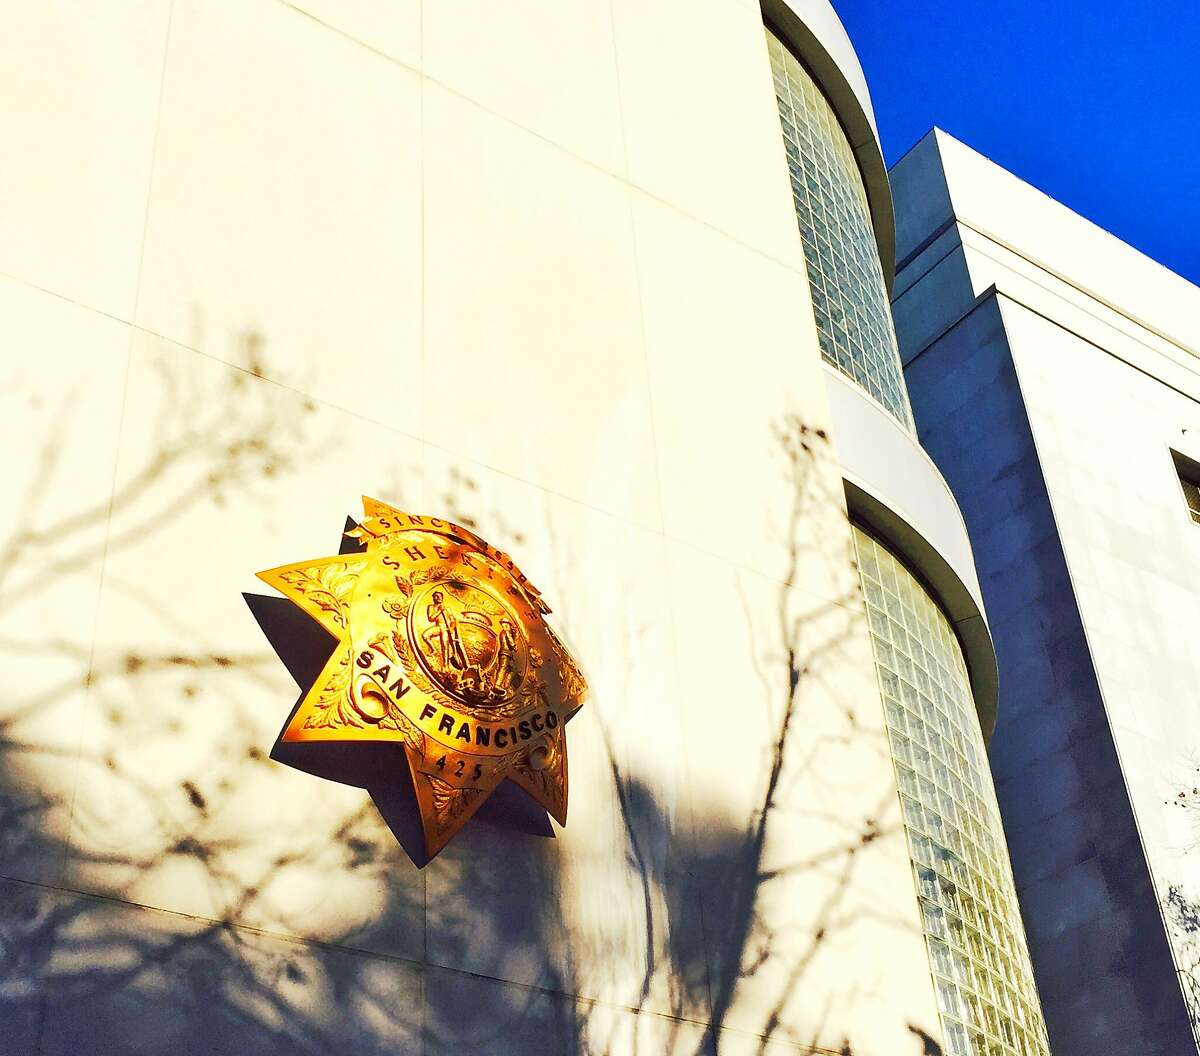 This undated file photo shows the San Francisco County Jail and Sheriff's Department headquarters.